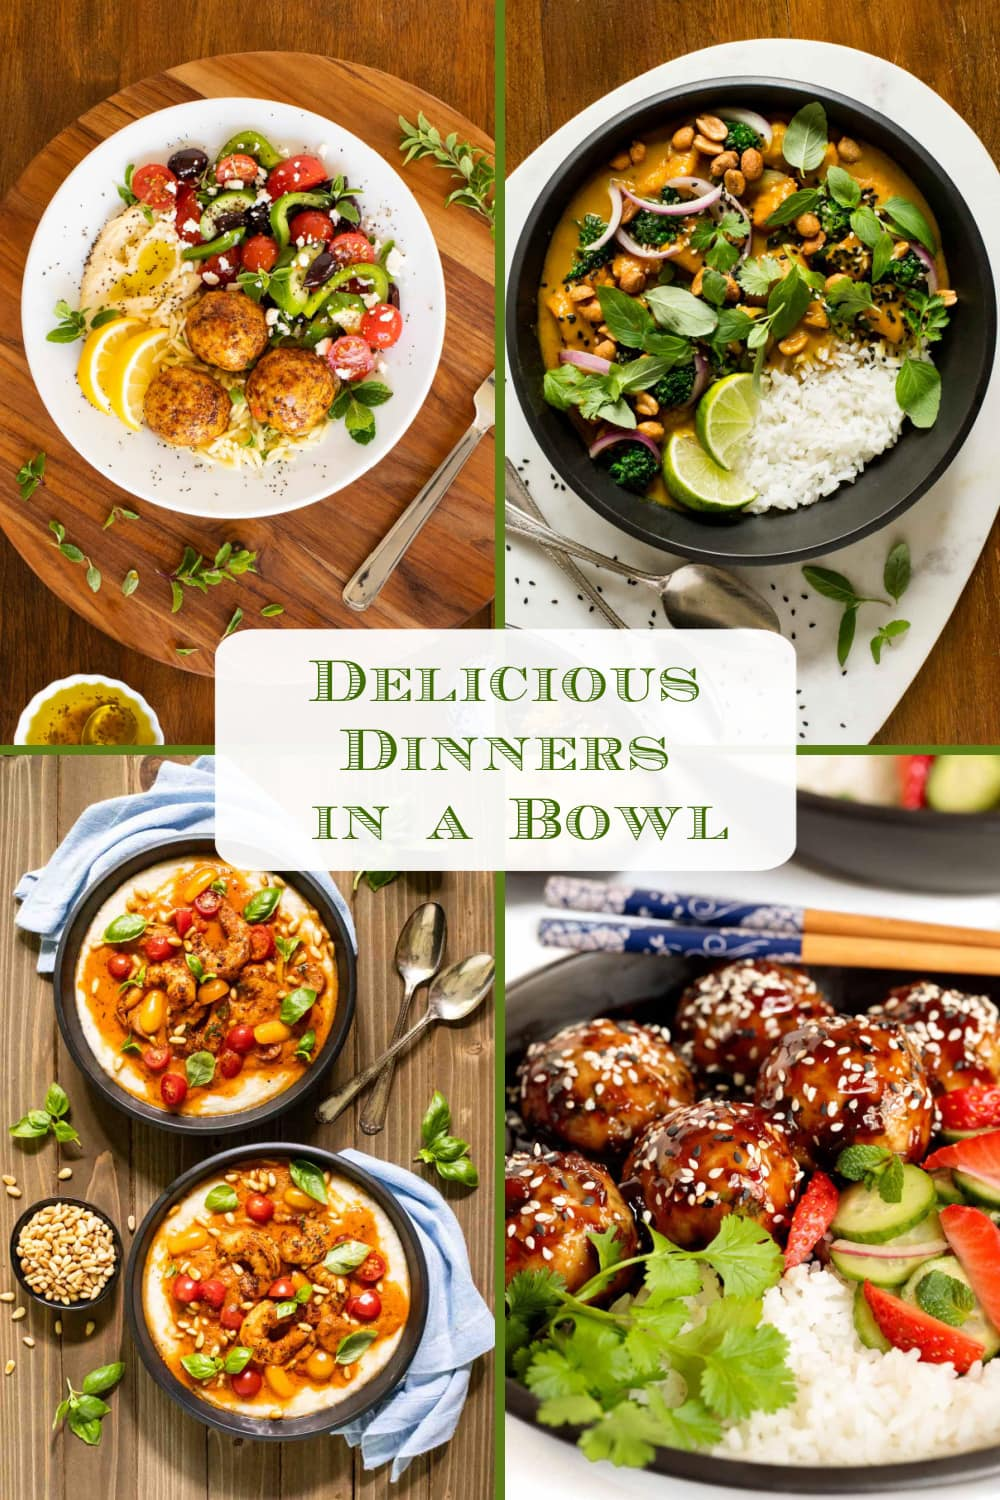 10 Delicious Dinner Ideas, All Served in a Bowl